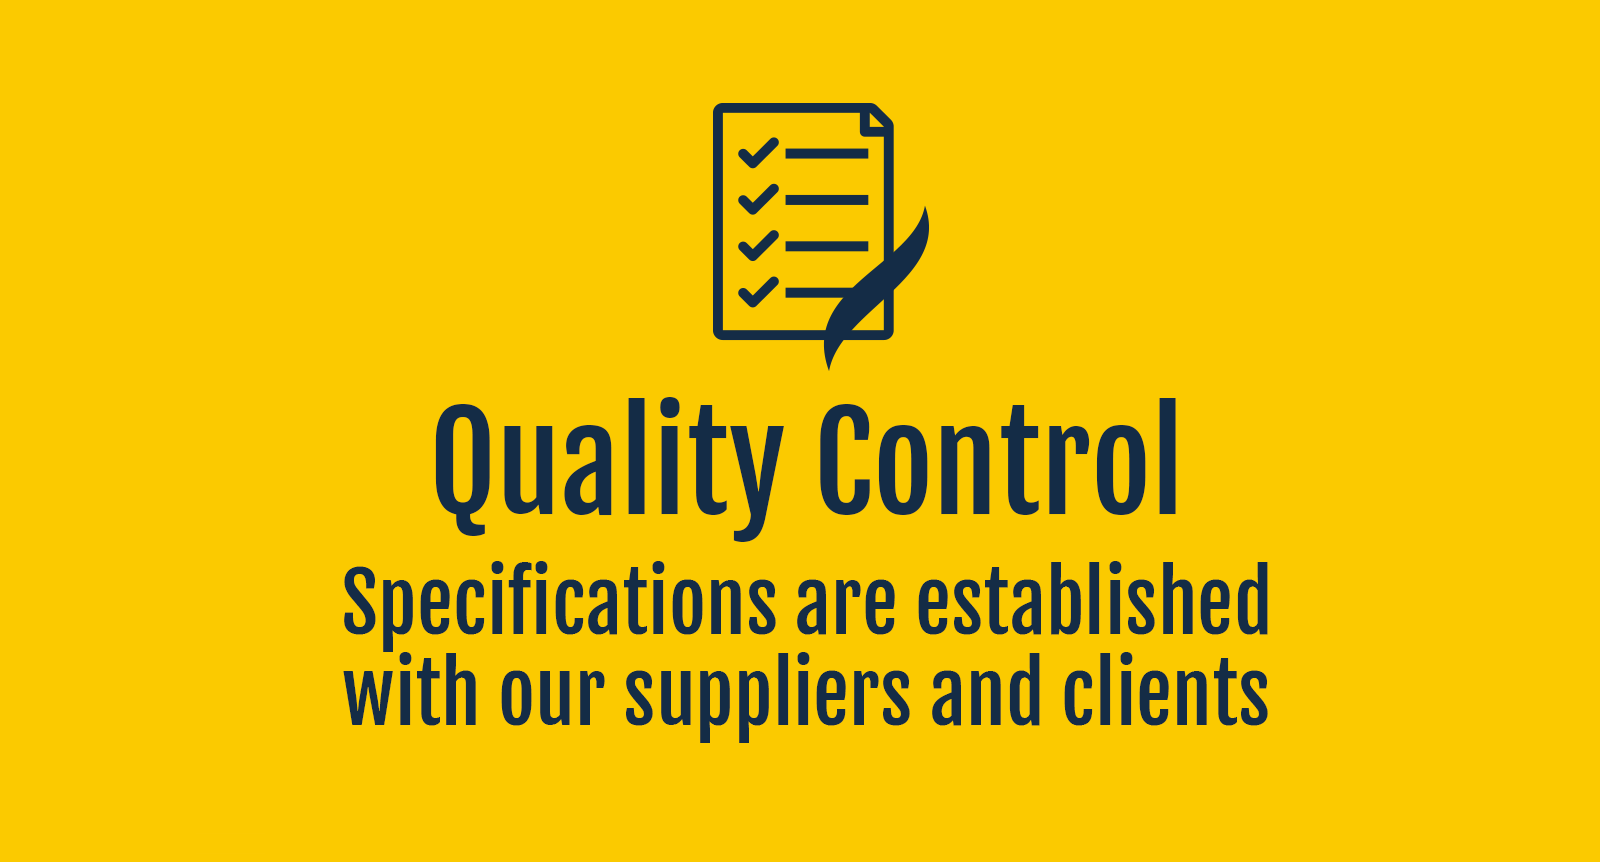 exofood quality control specifications are established with our suppliers and clients